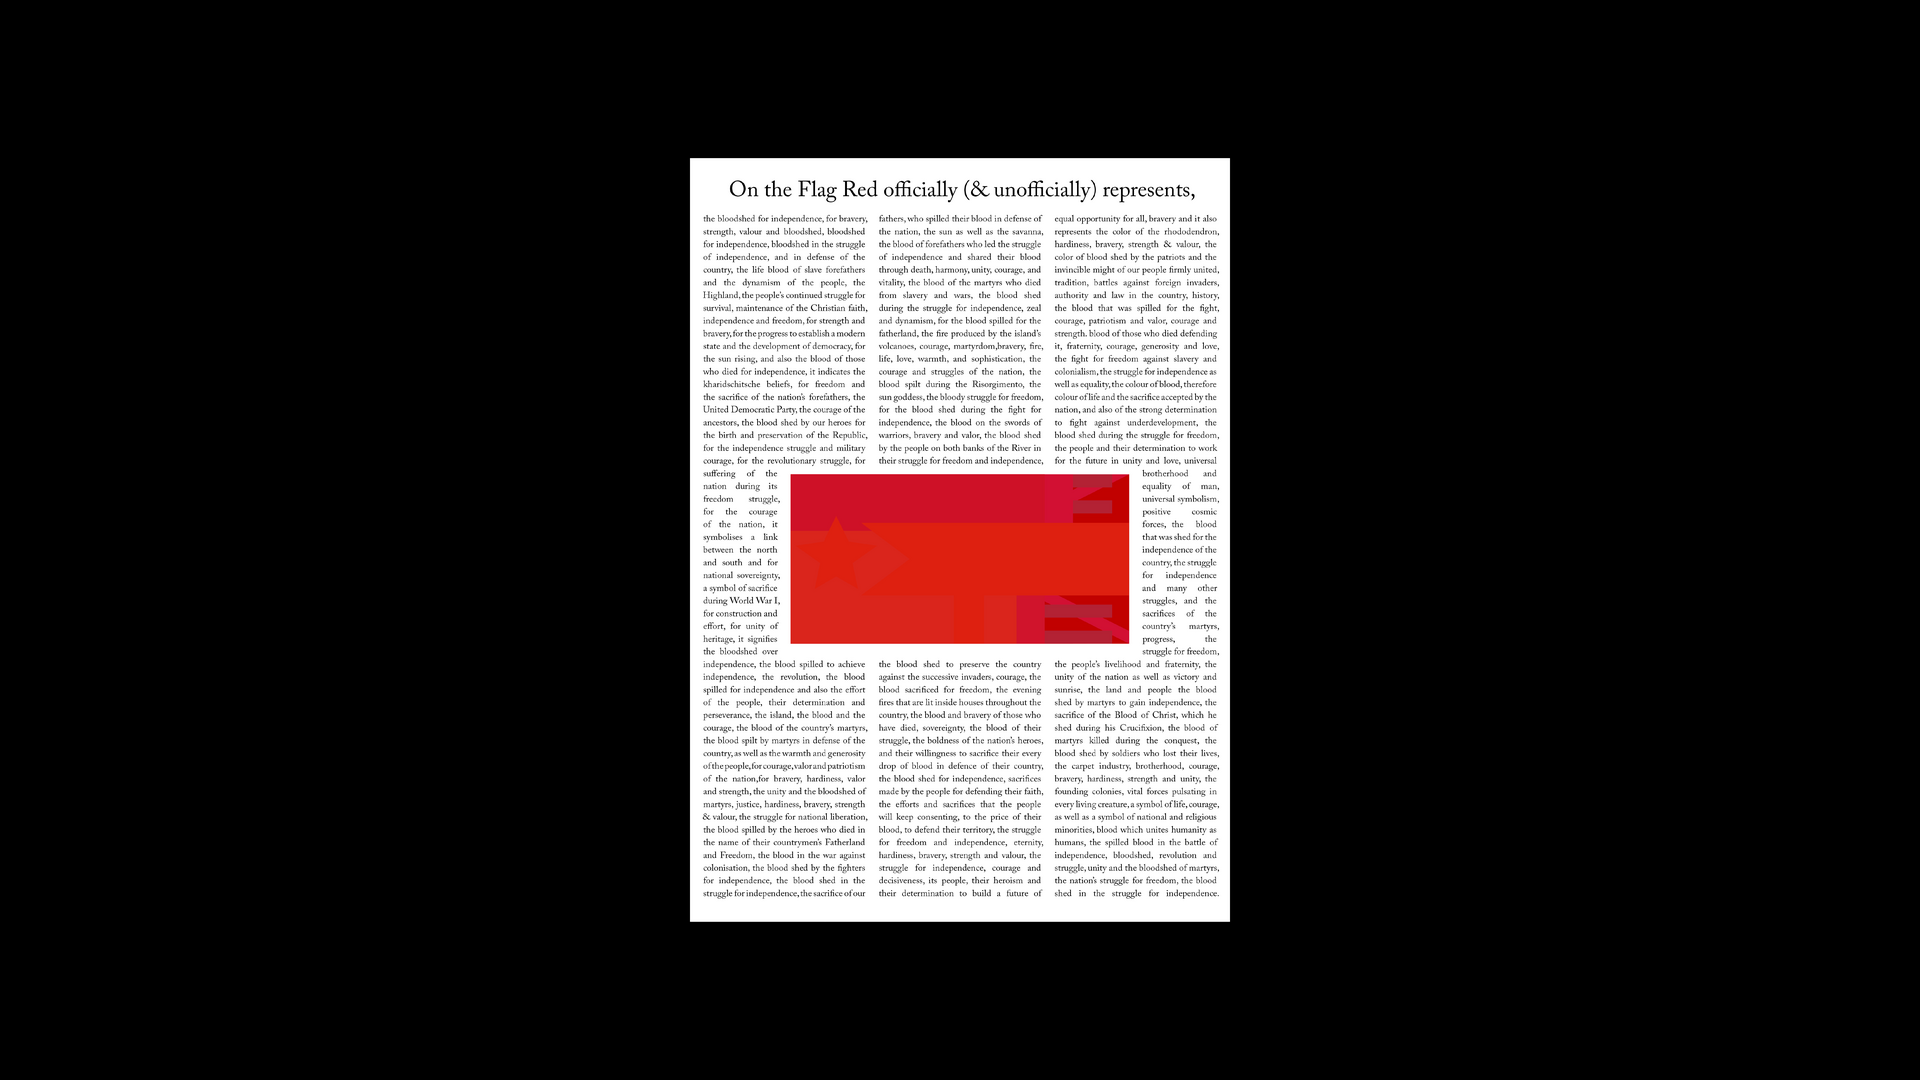 The Flag(s) (Red) Constitution